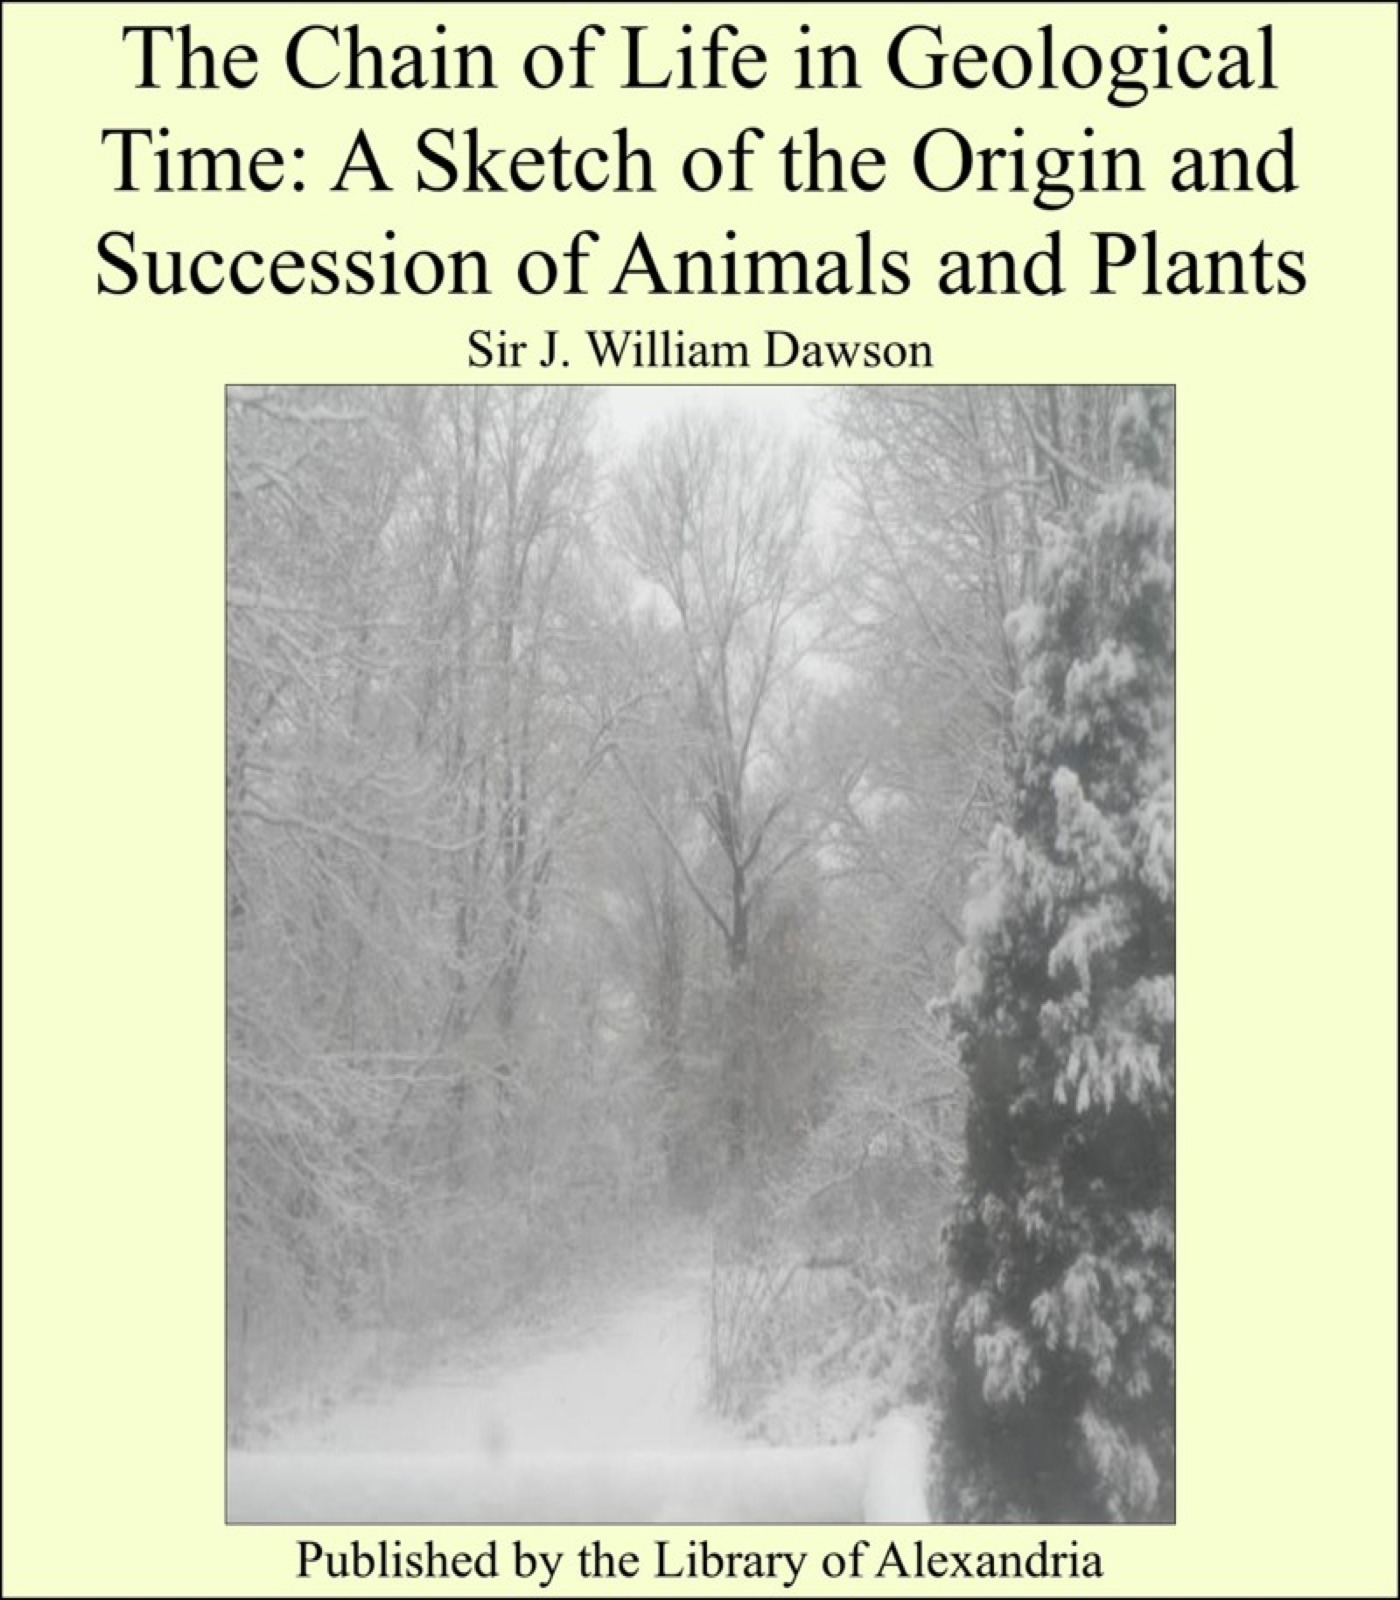 The Chain of Life in Geological Time: A Sketch of the Origin and Succession of Animals and Plants